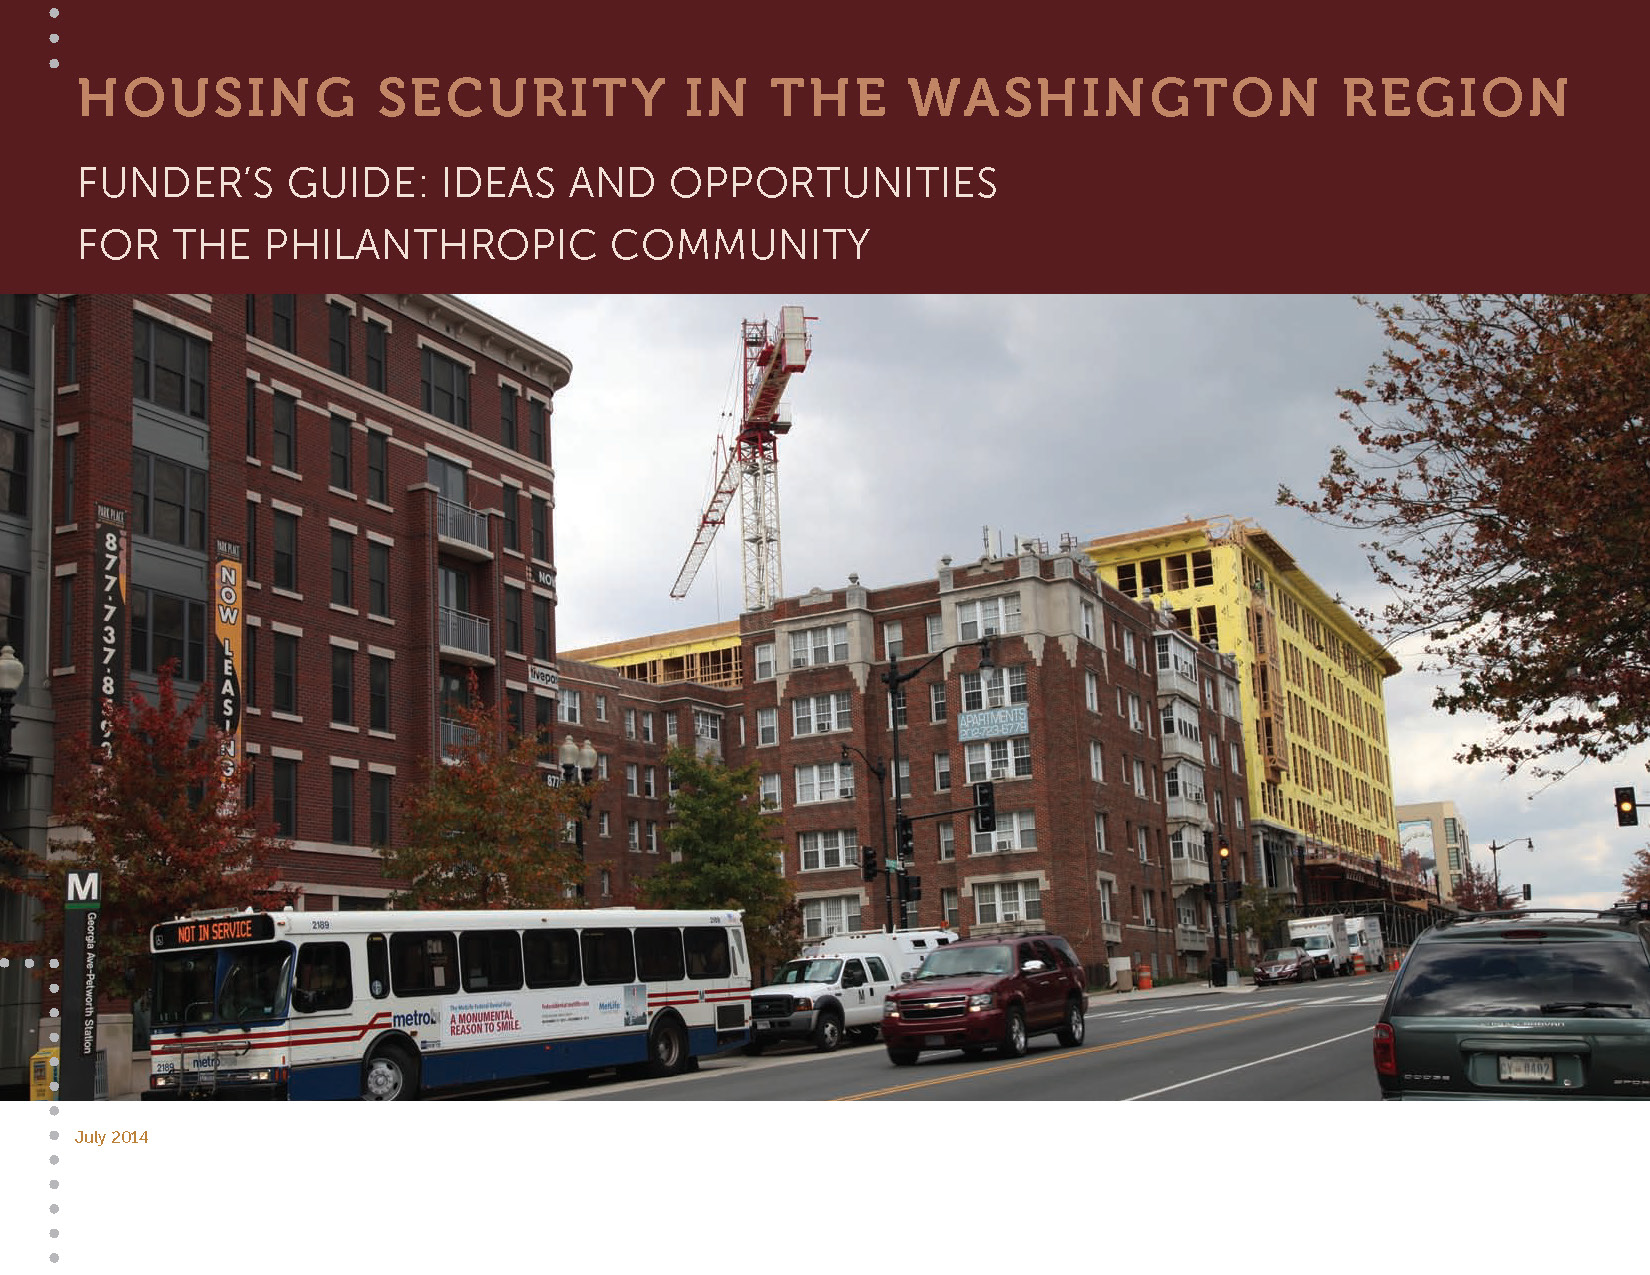 Housing Security in the Washington Region (Funder's Guide)